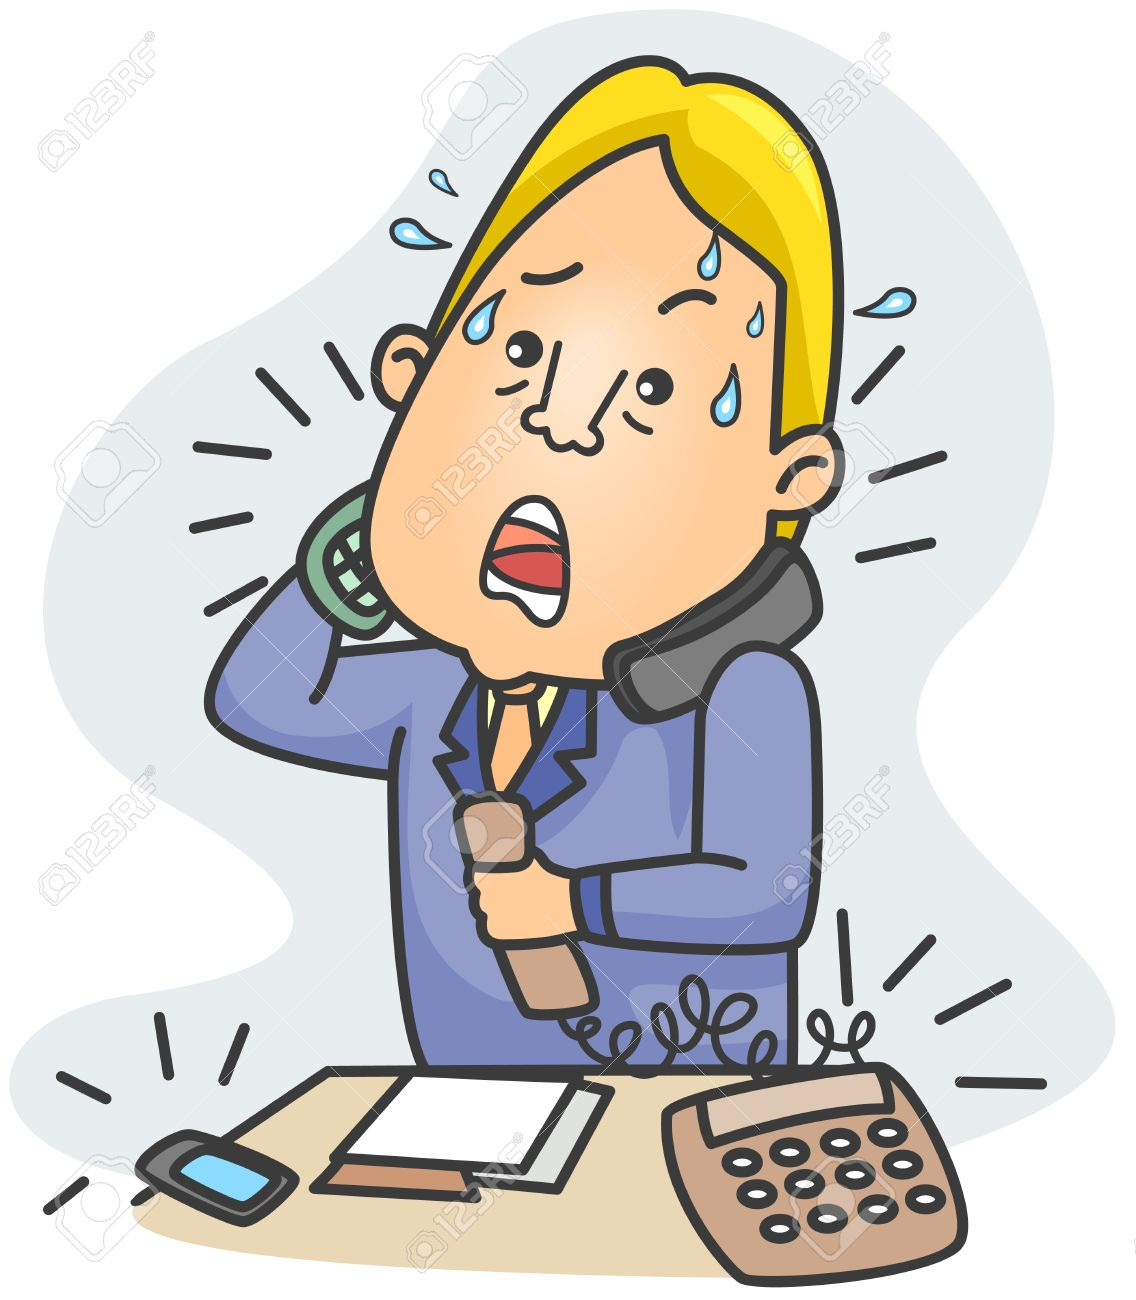 Illustration Of A Businessman Answering Simultaneous Calls Stock.